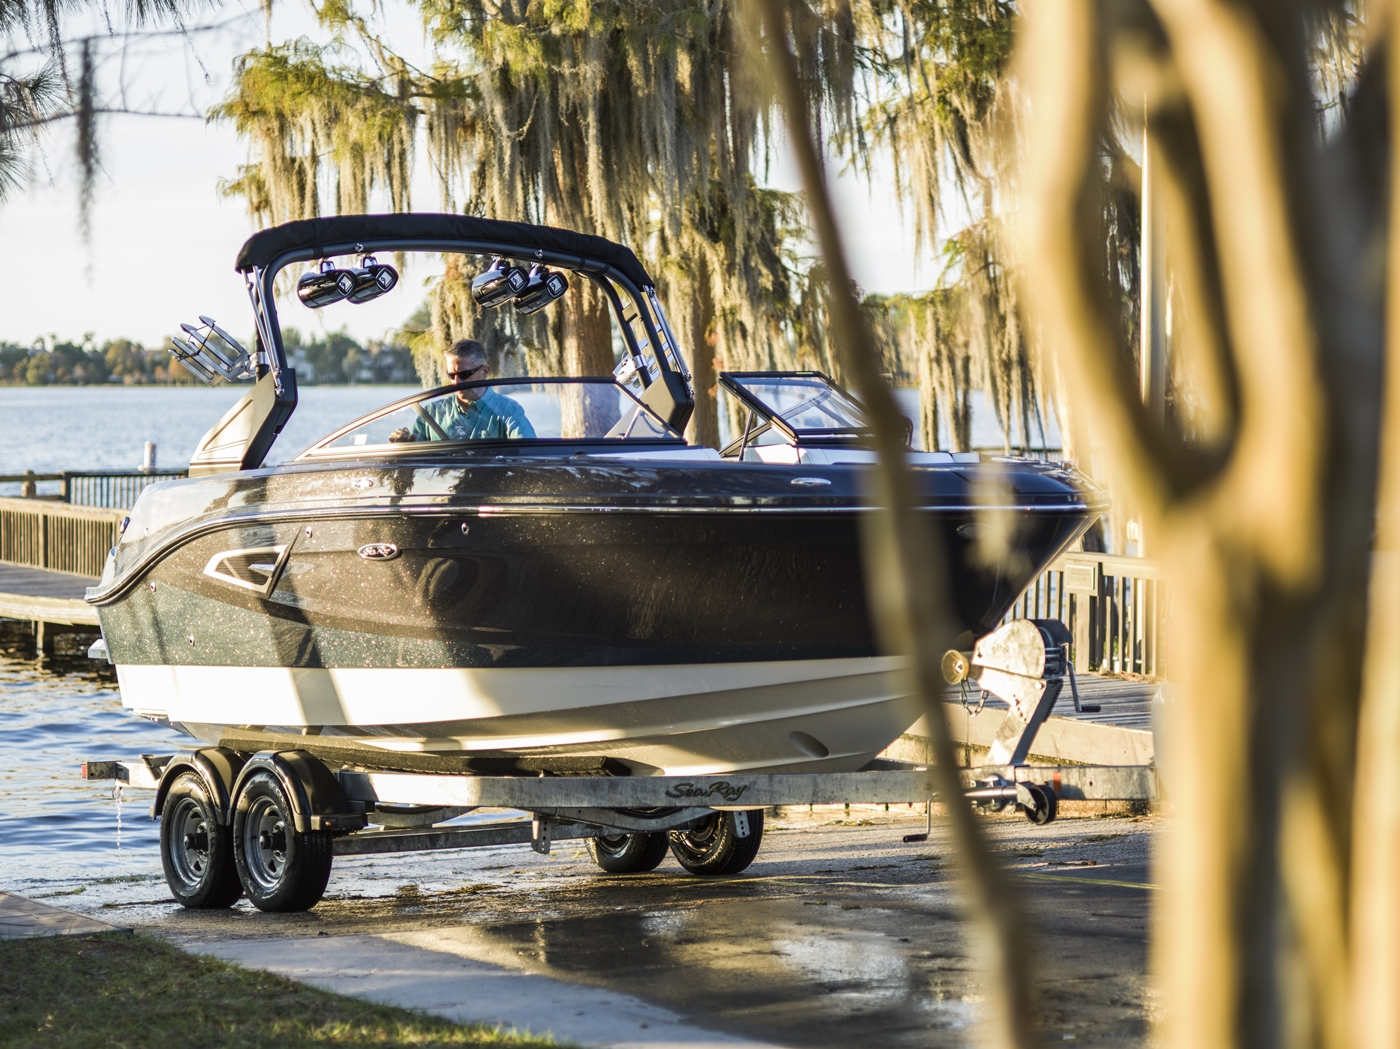 2017 Sea Ray boat for sale, model of the boat is SLX-W 230 & Image # 25 of 26